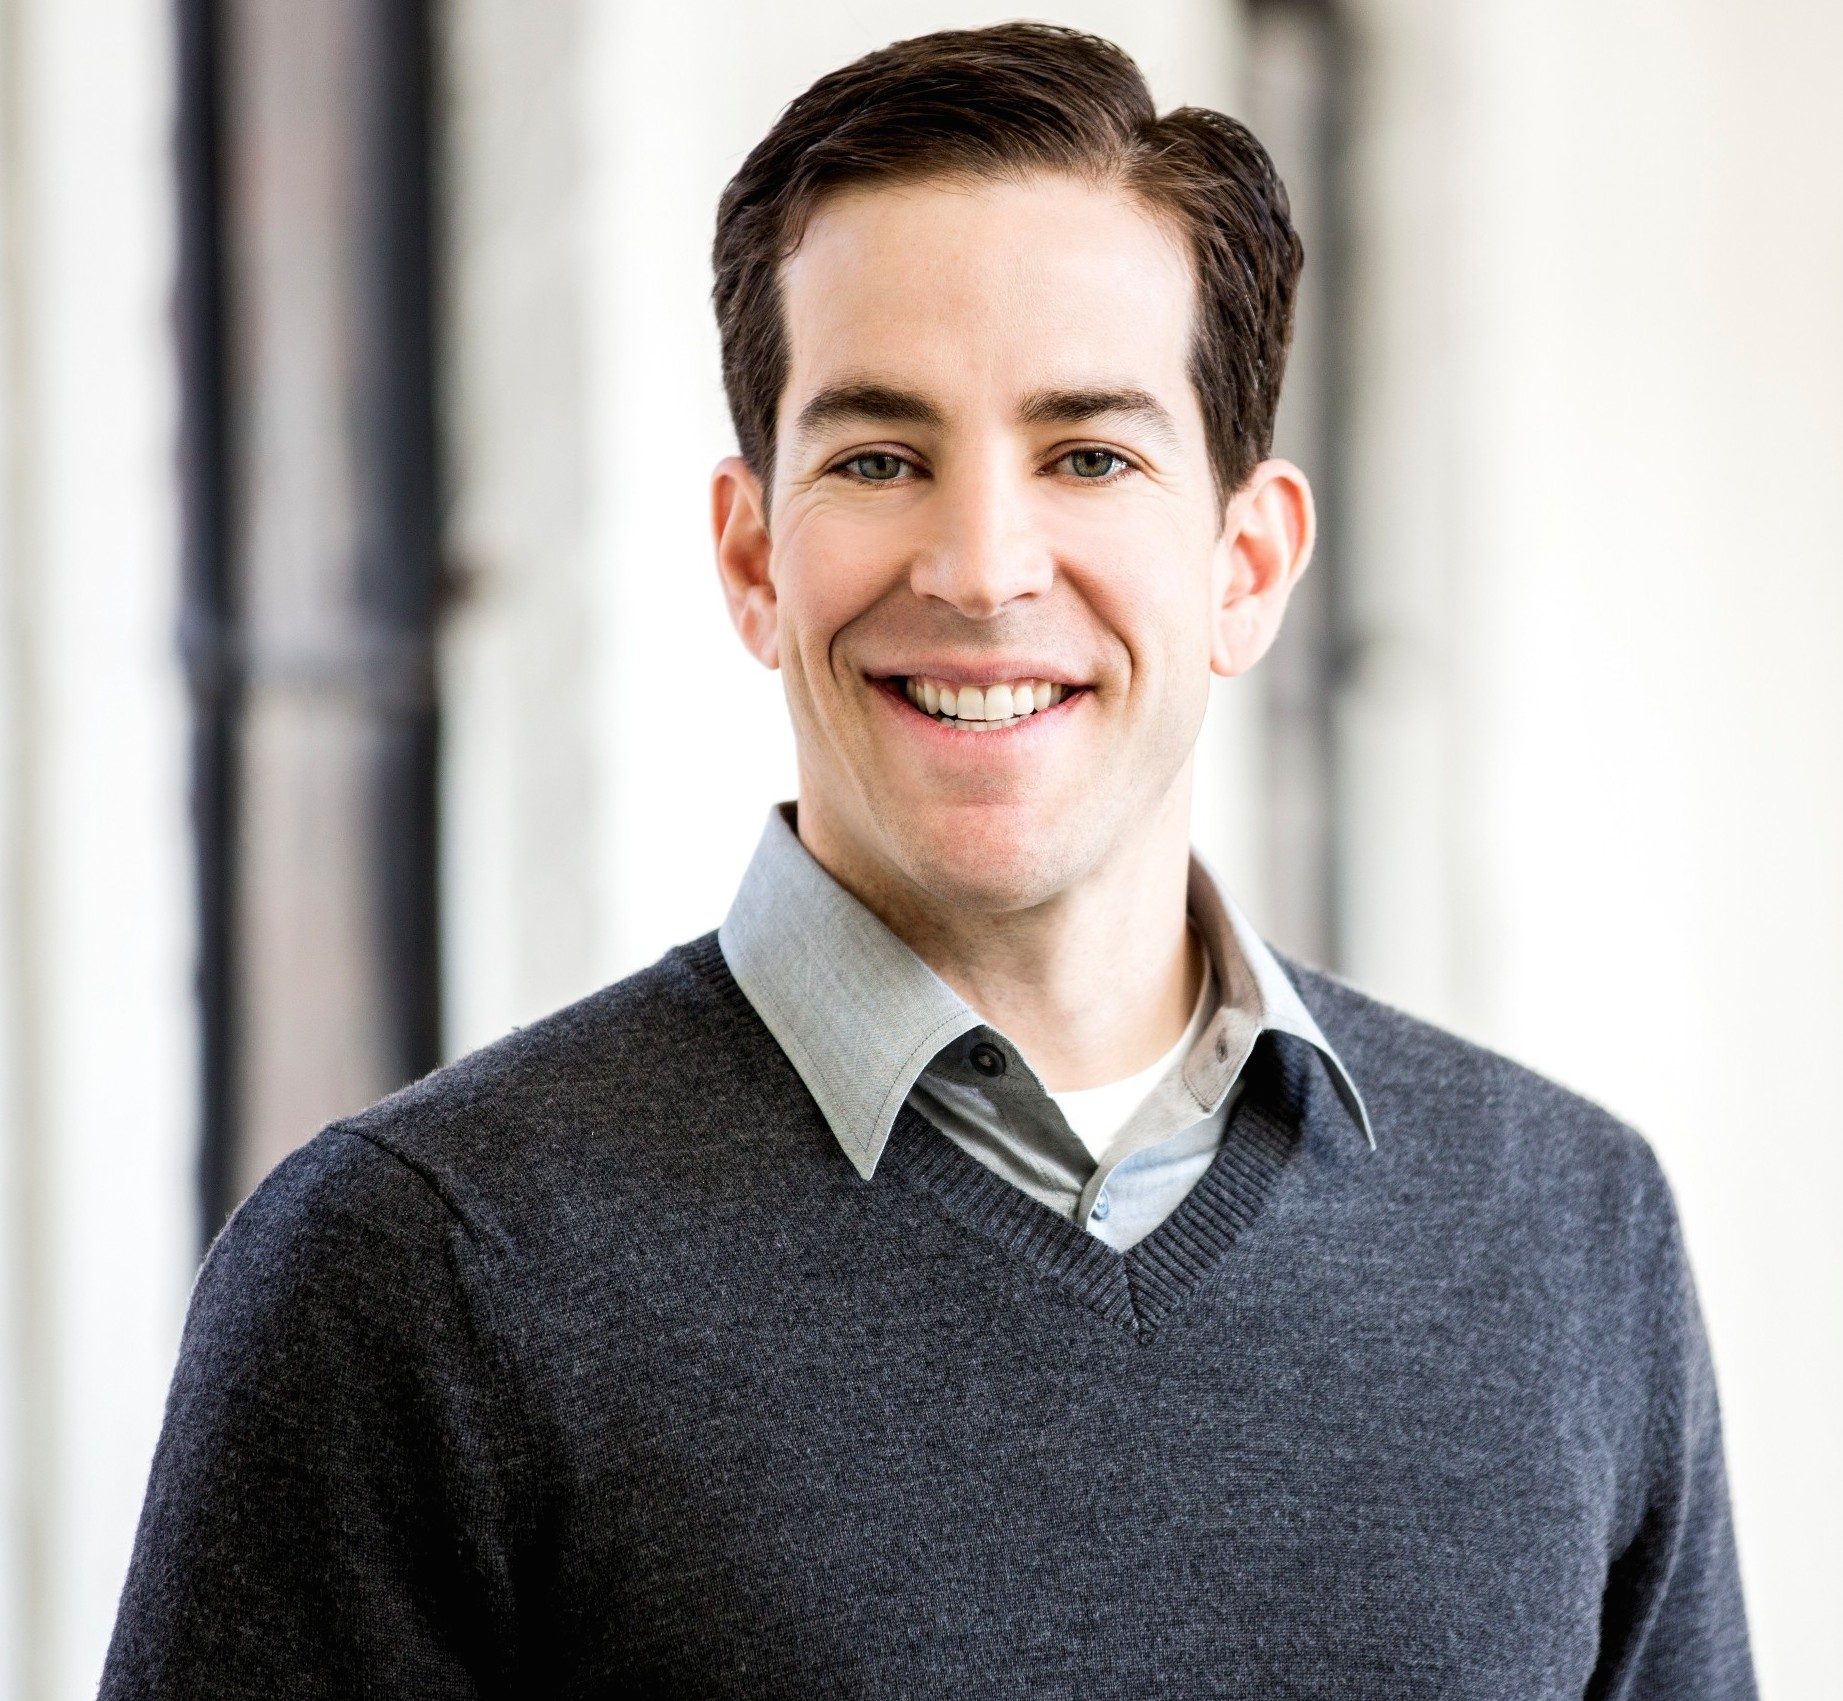 Todd McKinnon, co-founder and CEO of Okta